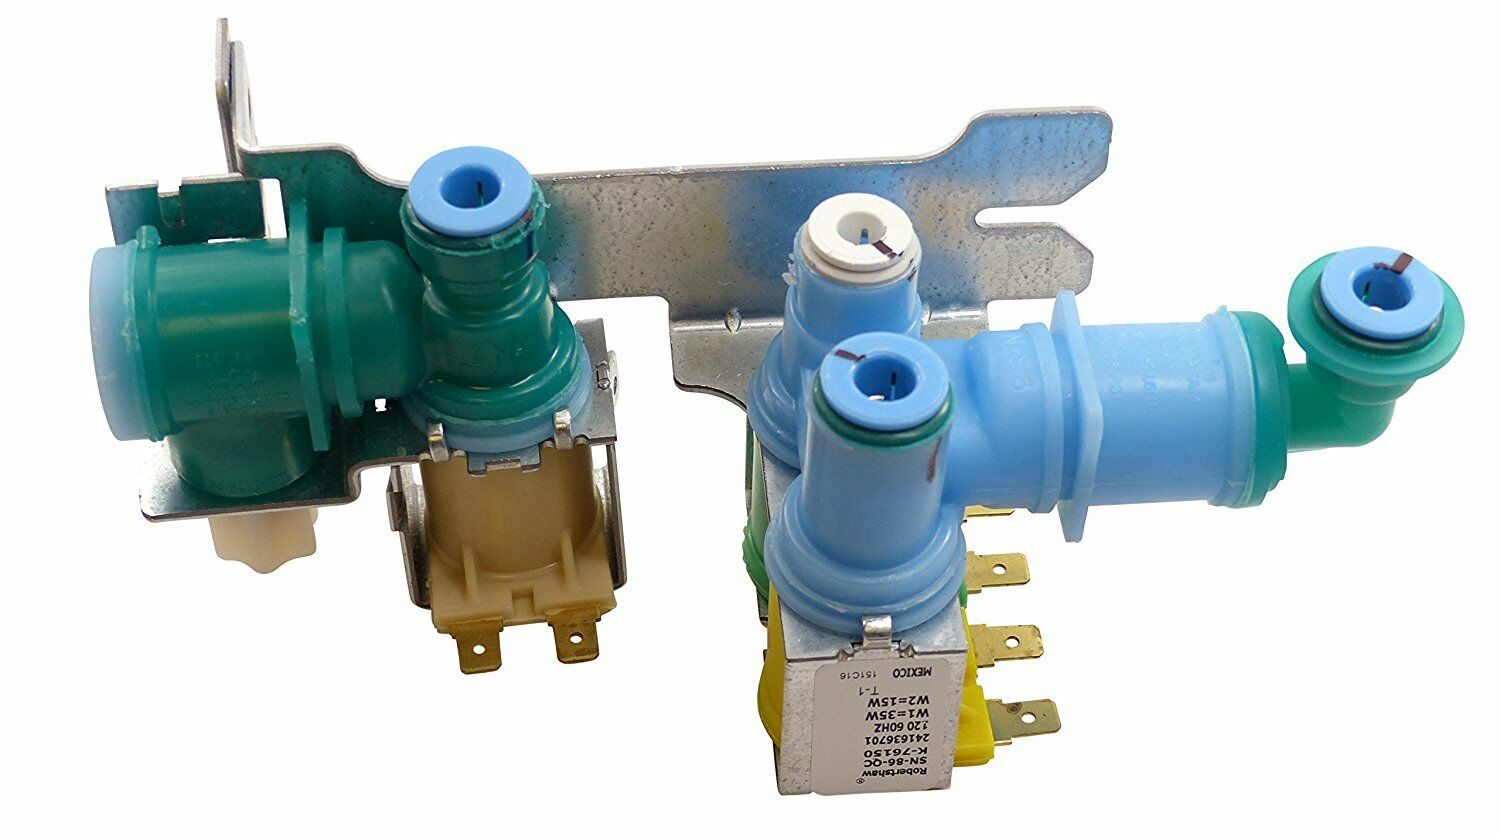 242252702 TRIPLE WATER VALVE REPLACEMENT FOR FRIGIDAIRE ELEC